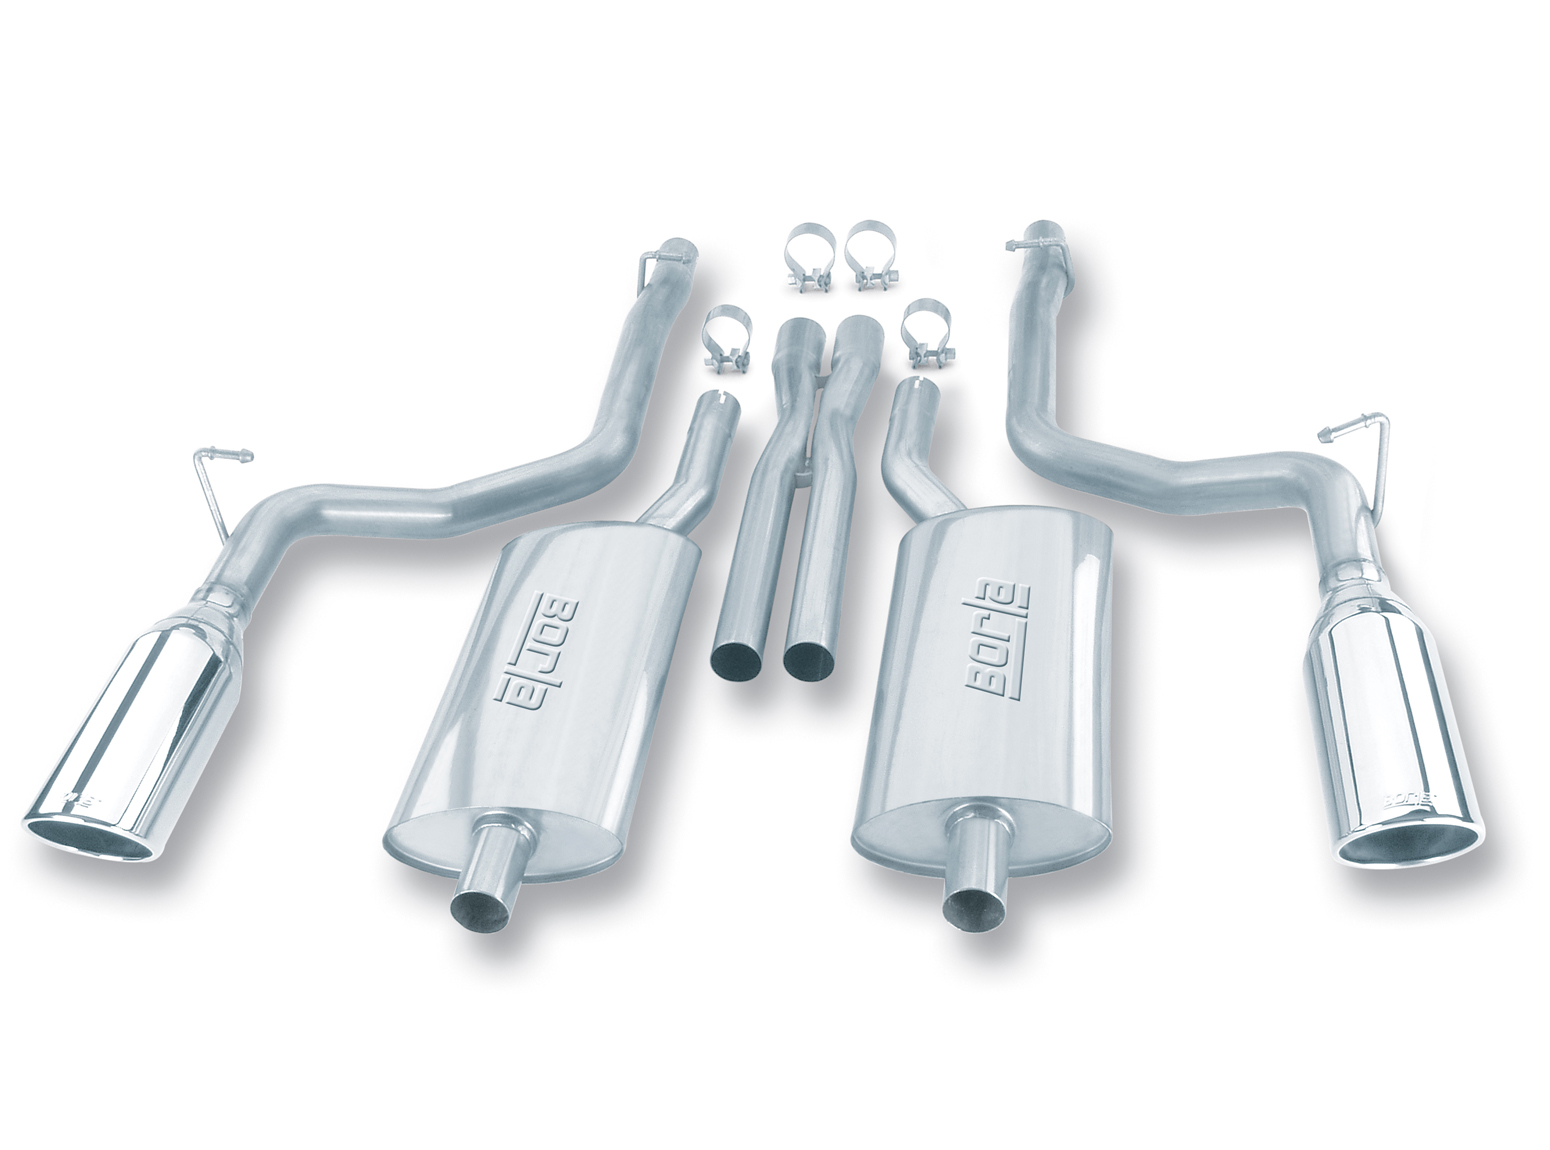 "Dodge Charger Rt 5.7l V8 2005-2010 Borla 2.5"", 2.25"" Cat-Back Exhaust System - Single Round Rolled Angle-Cut Single Square Angle-Cut Phantom Tips"" Long X Single Round Rolled Angle-Cut Phantom Tips"" Dia"